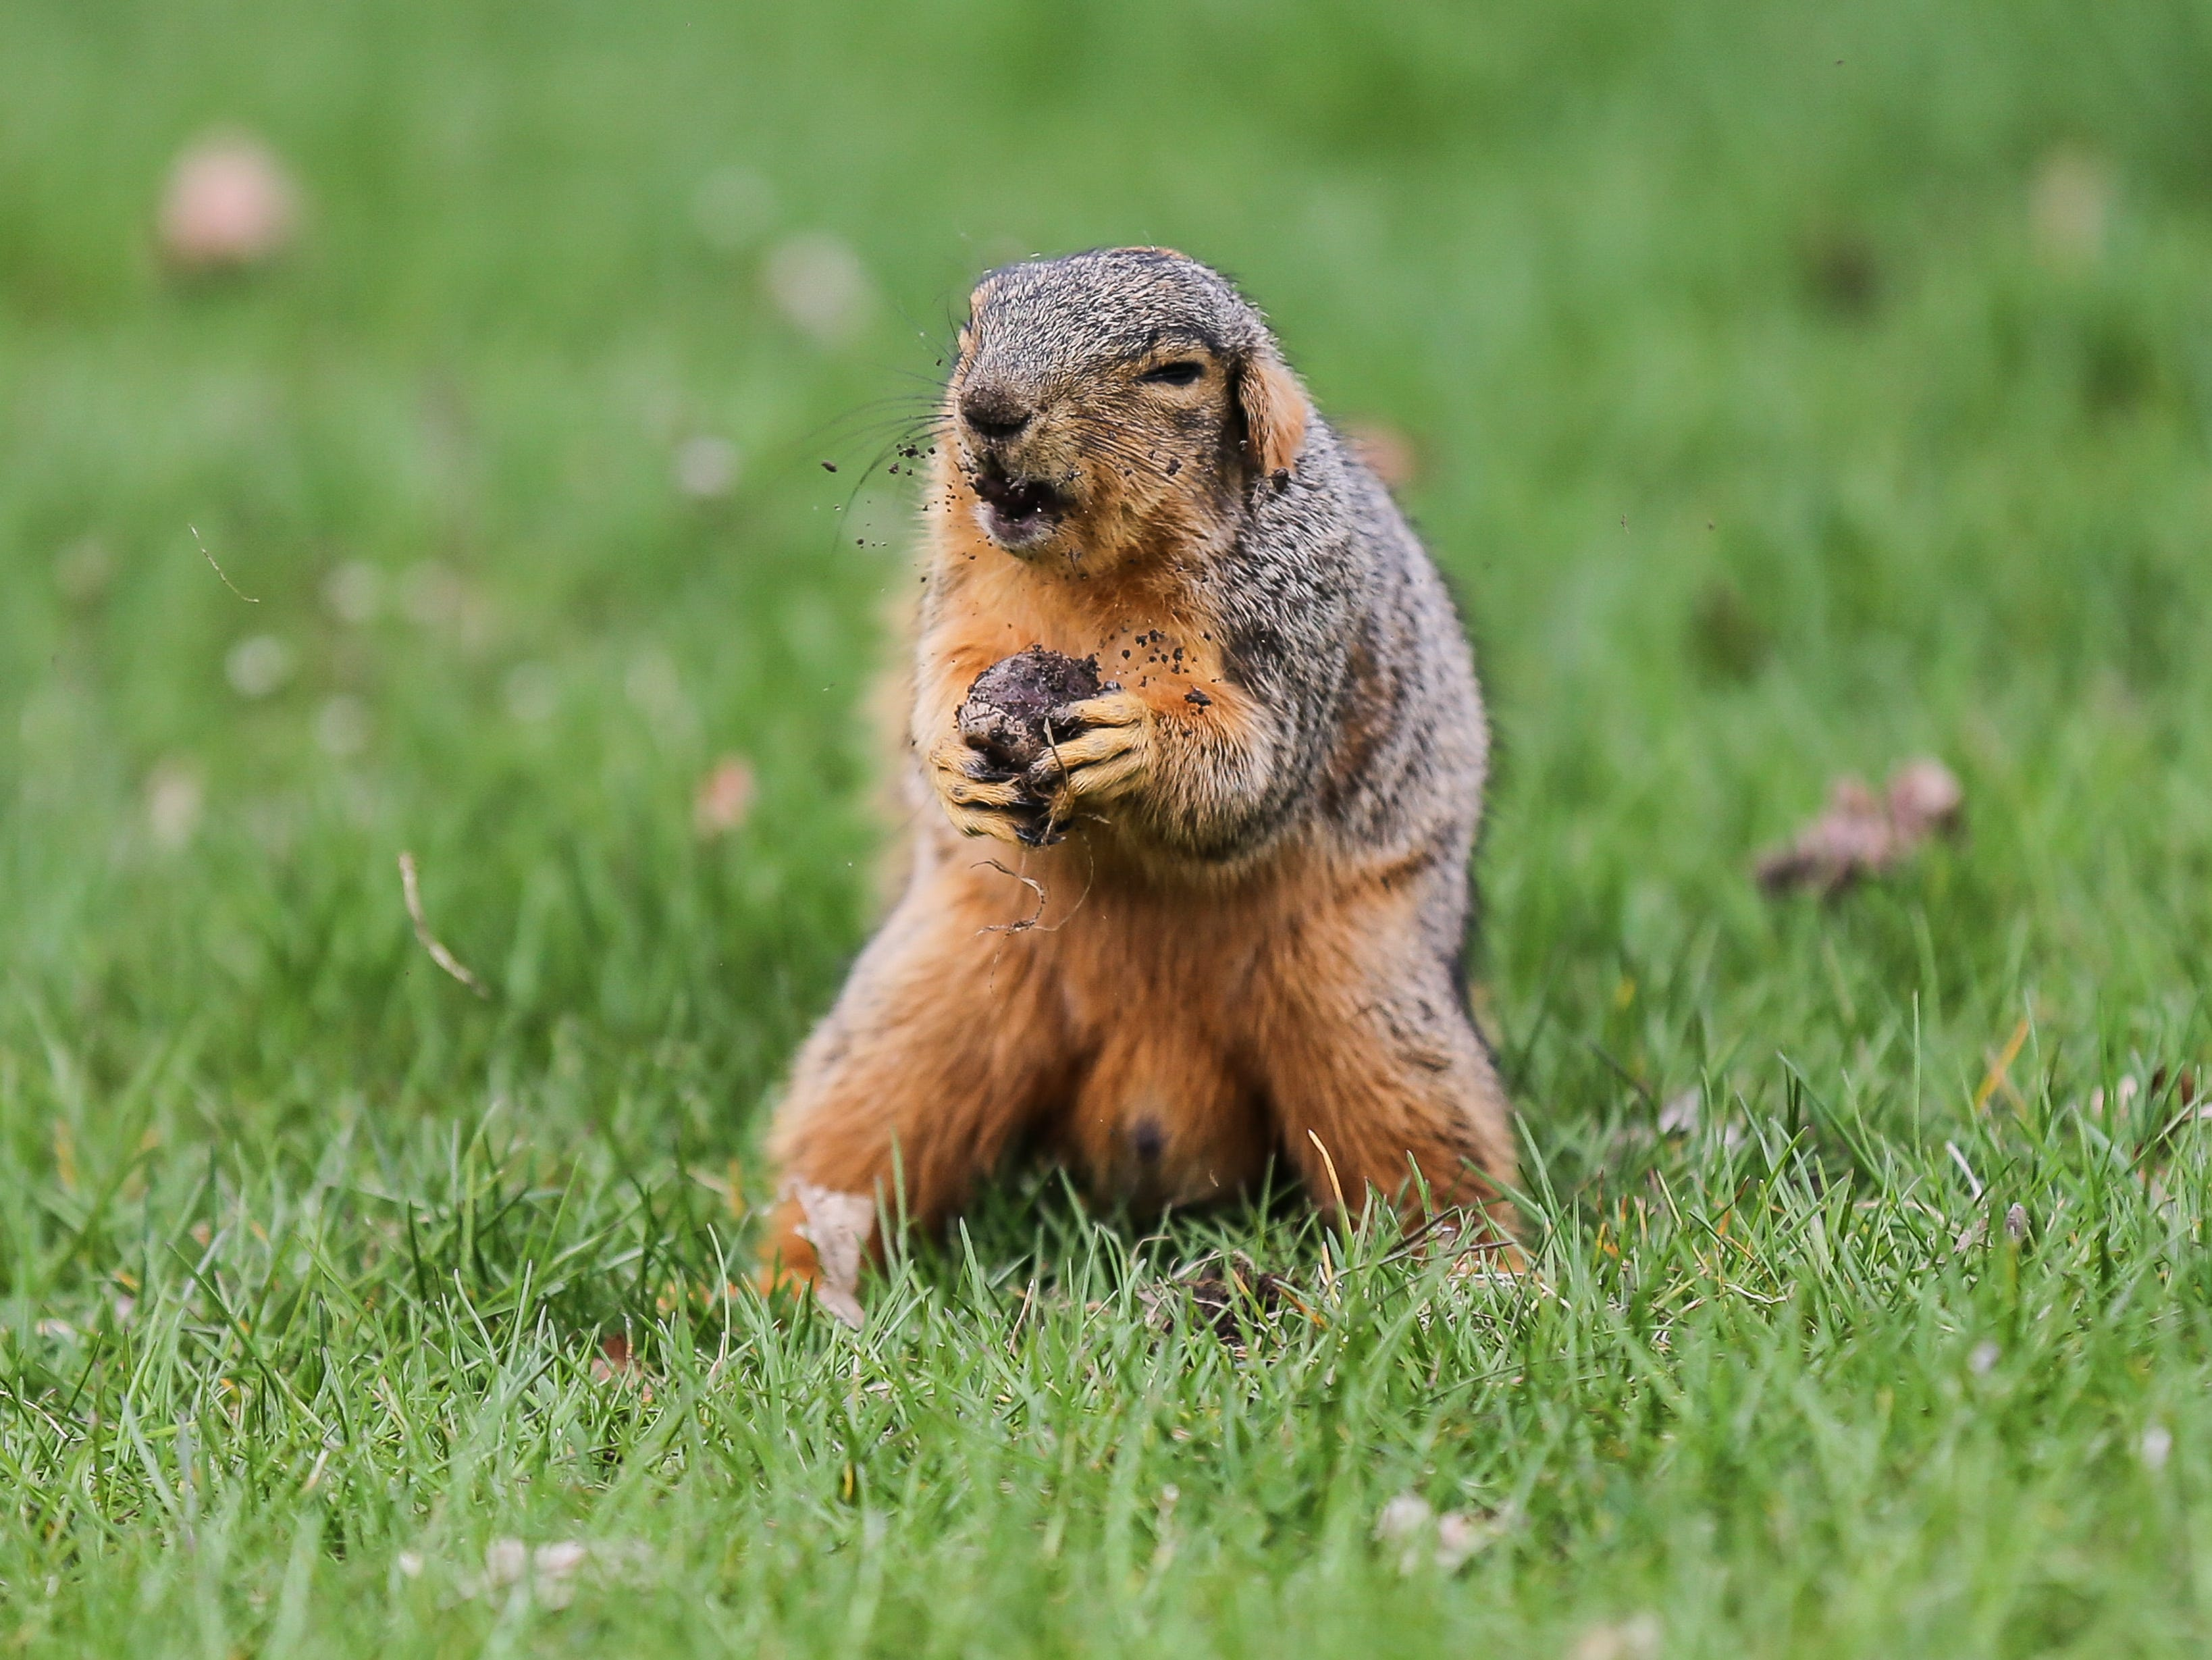 A squirrel munches on a nut during the Best Buddies Friendship Walk held at White River State Park in Indianapolis on Sunday, April 22, 2018.